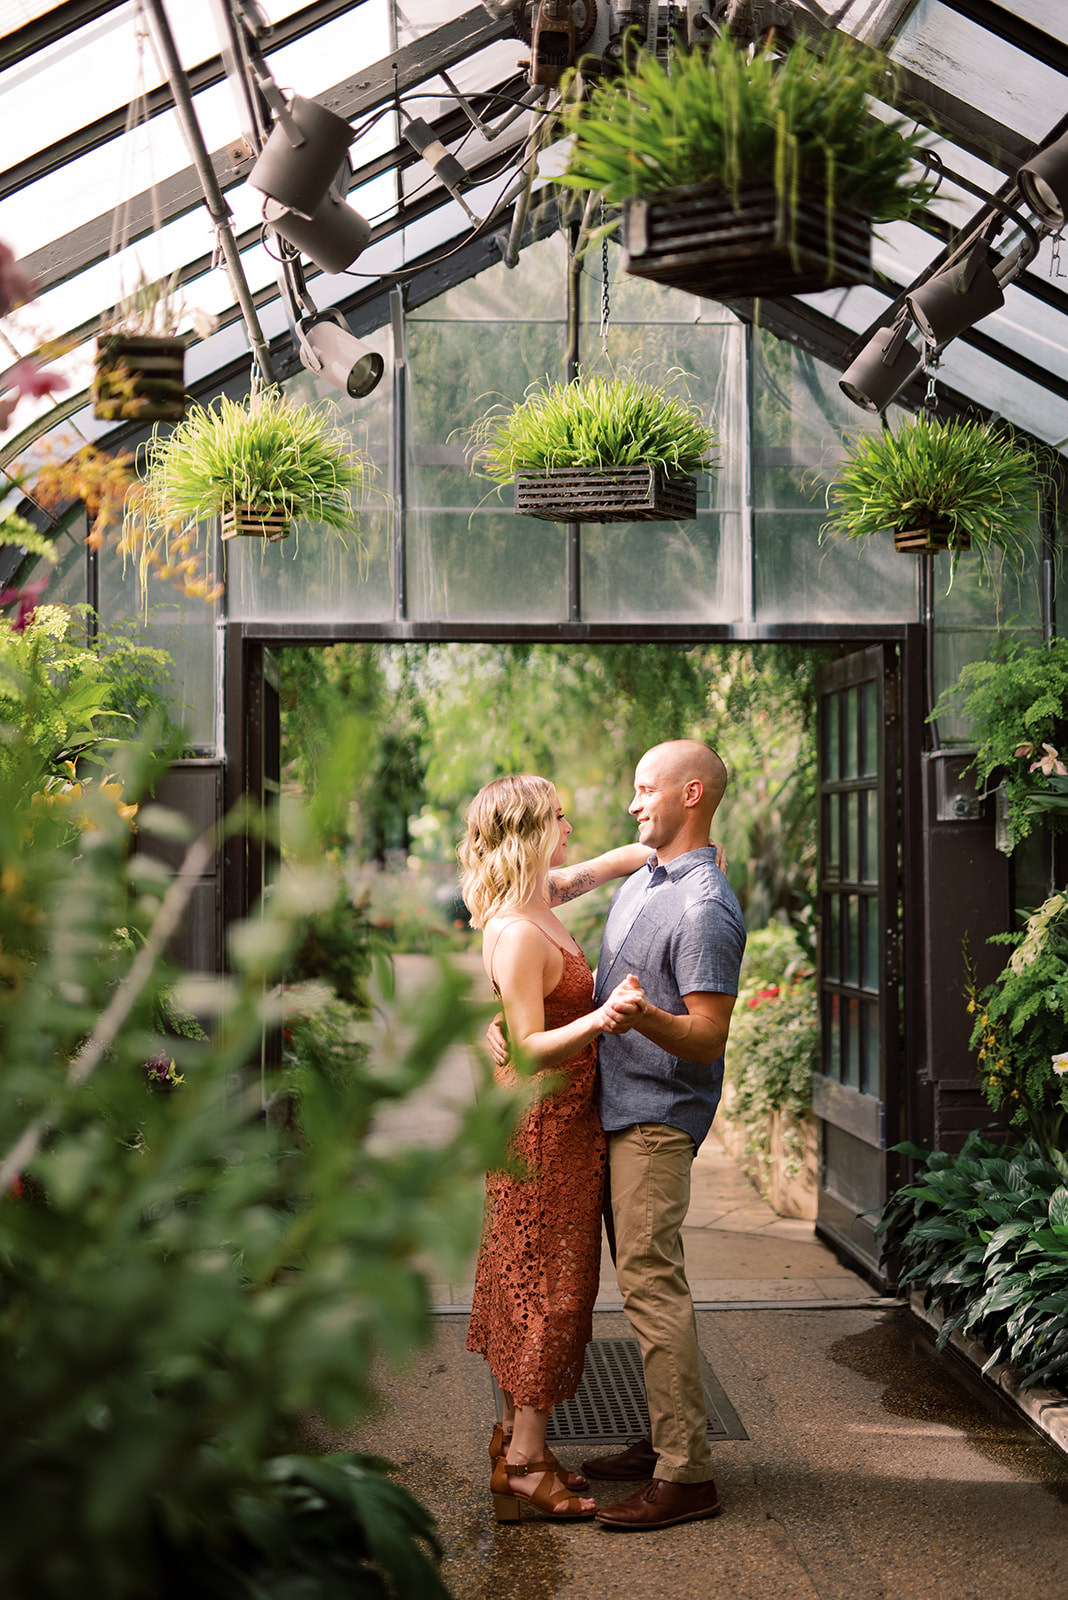 Taking engagement photos in the orchid room of the Longwood Gardens conservatory.